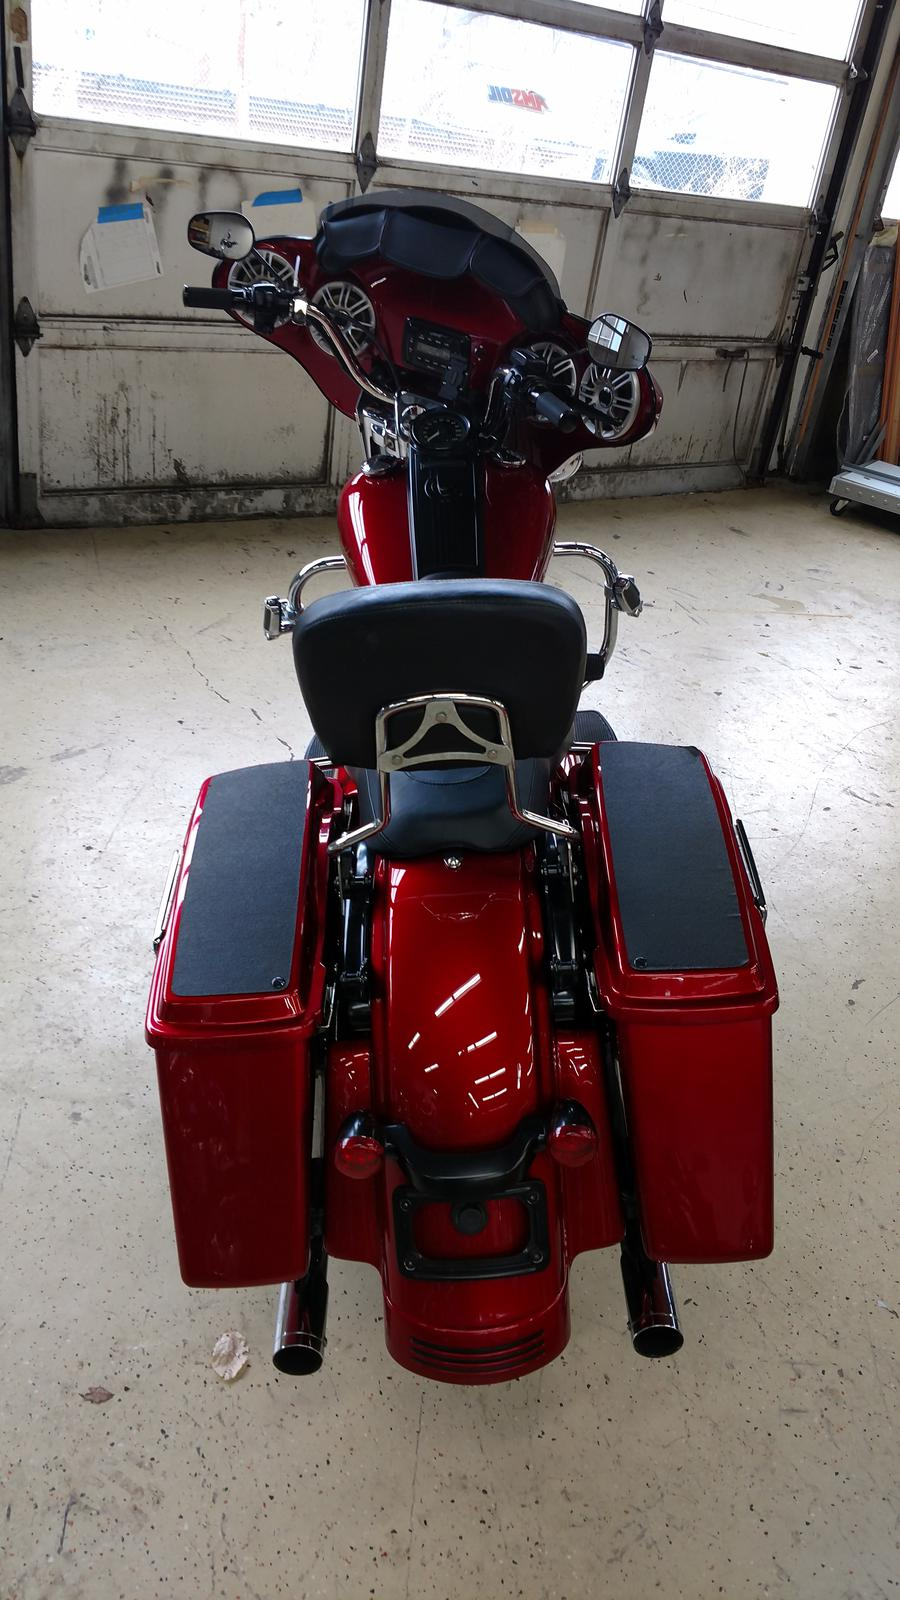 2013 Harley Davidson Flhr For Sale In Bedford Hills Ny Home Data Cable Wiring Together With Brake Cables And Westchester Powersports 914 864 0656